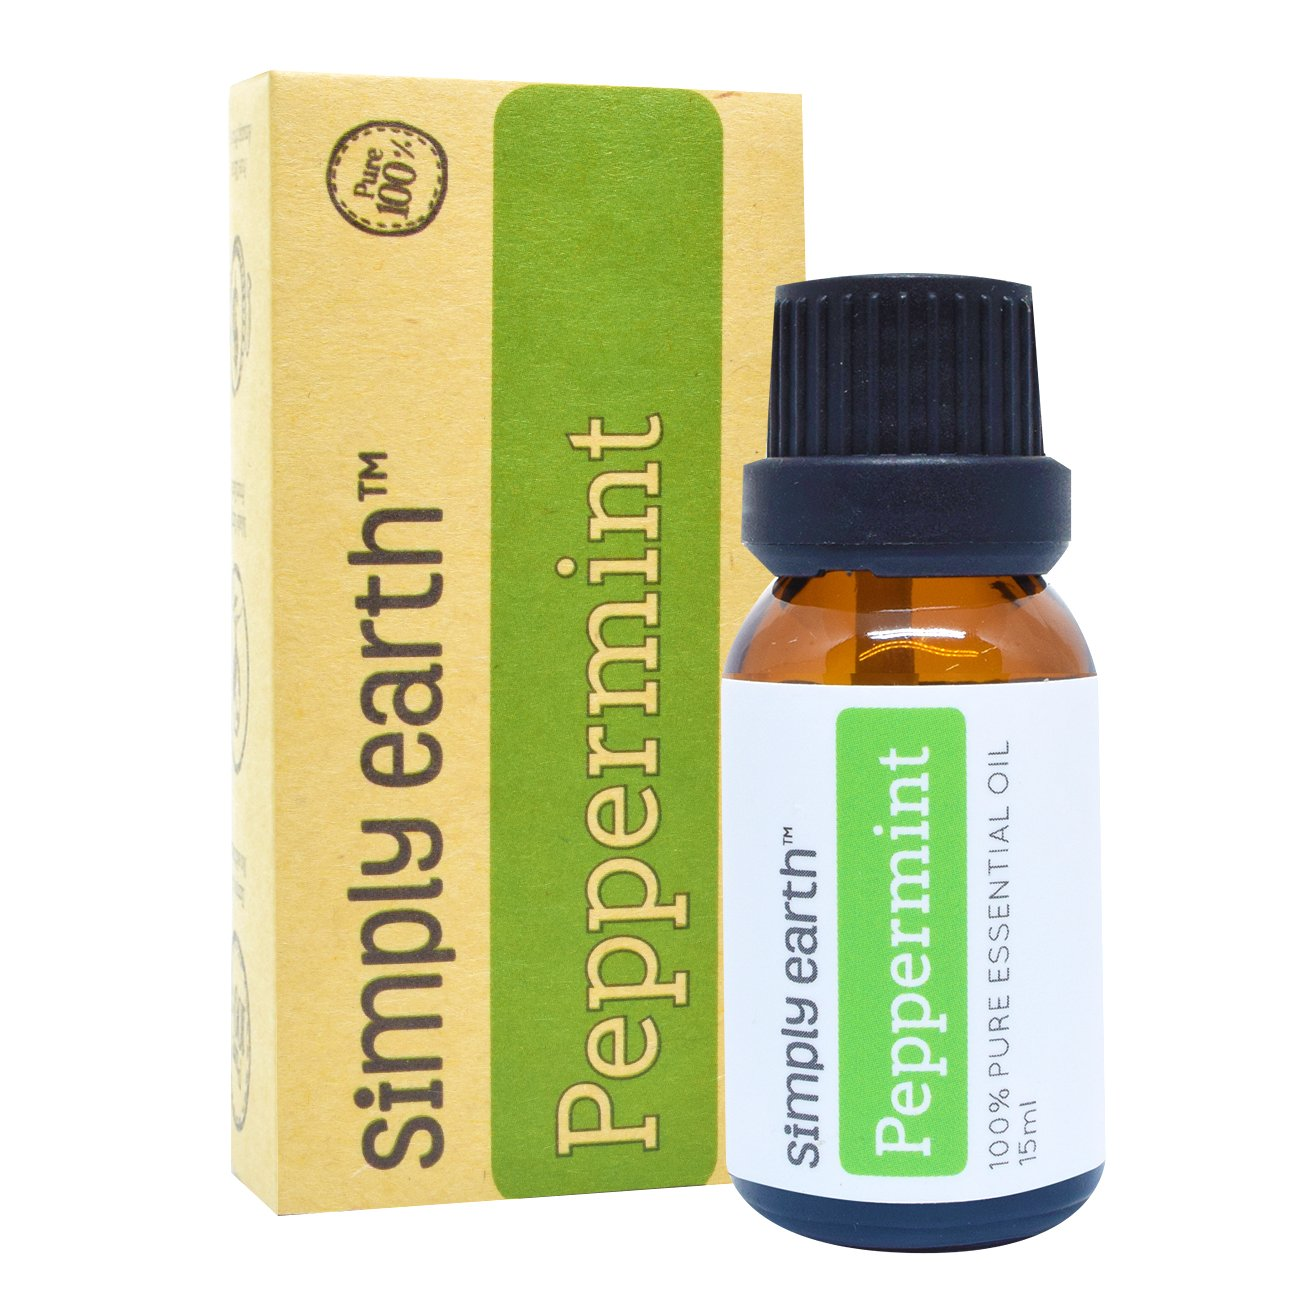 Simply Earth Peppermint Essential Oil by 15 ml, 100% Pure Therapeutic Grade